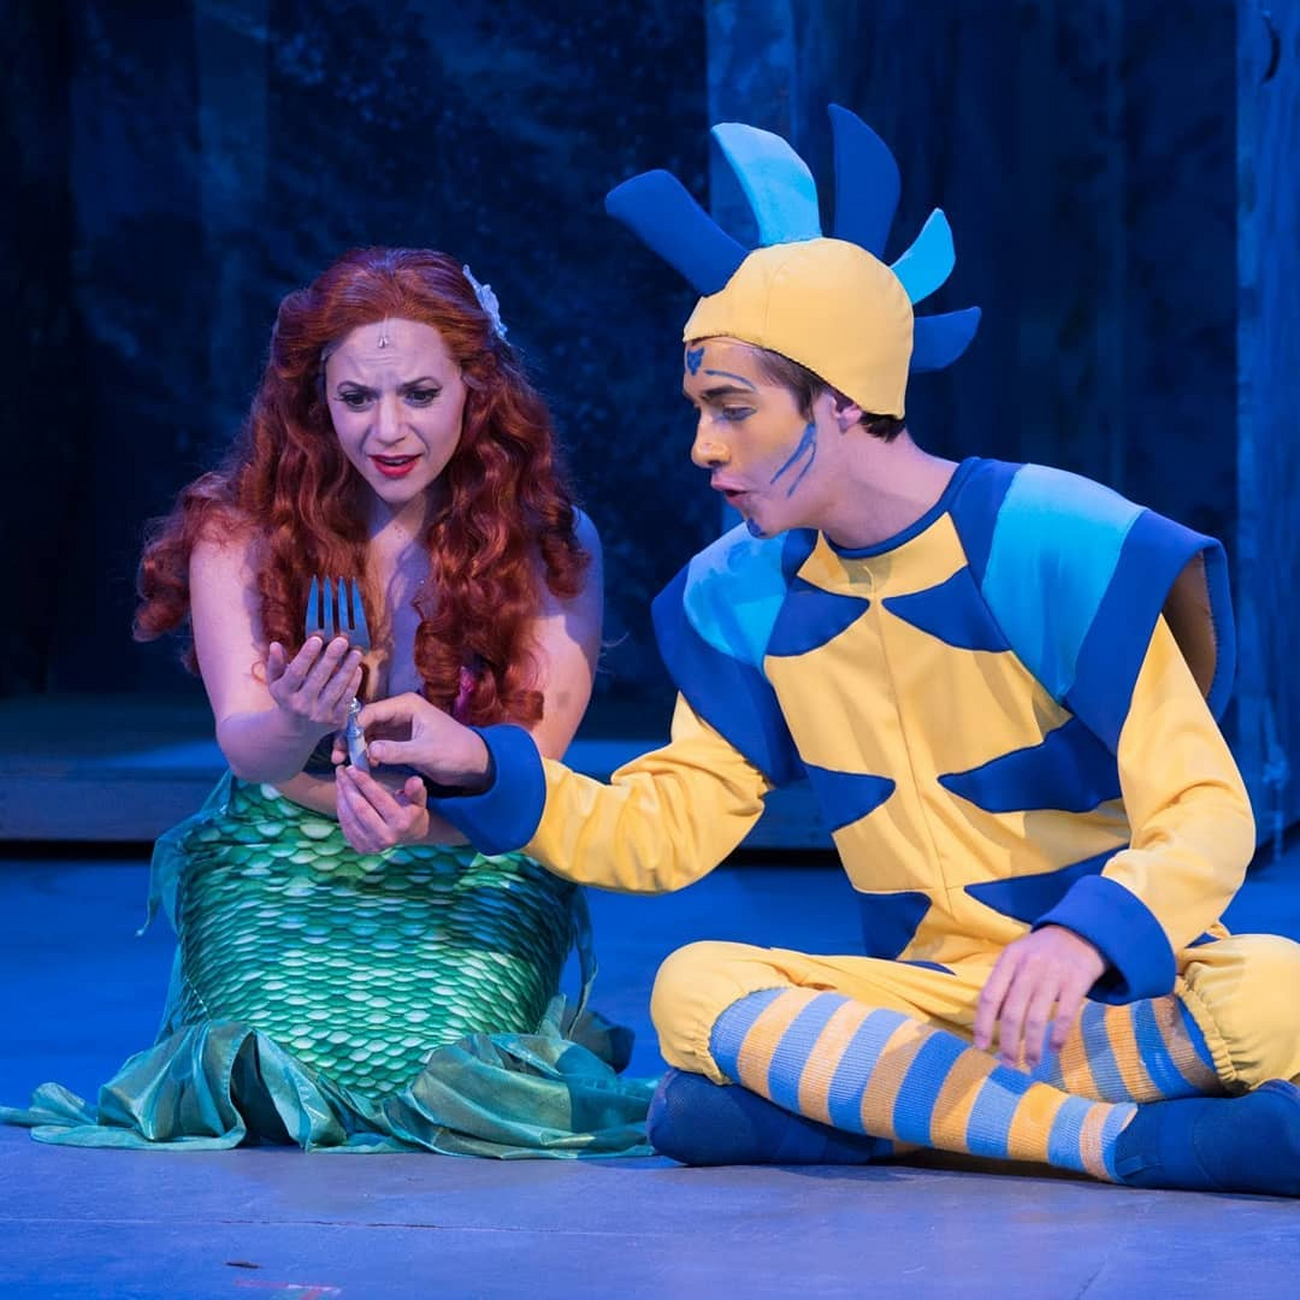 BWW Review: DISNEY'S THE LITTLE MERMAID is Family-Friendly Summer Fun